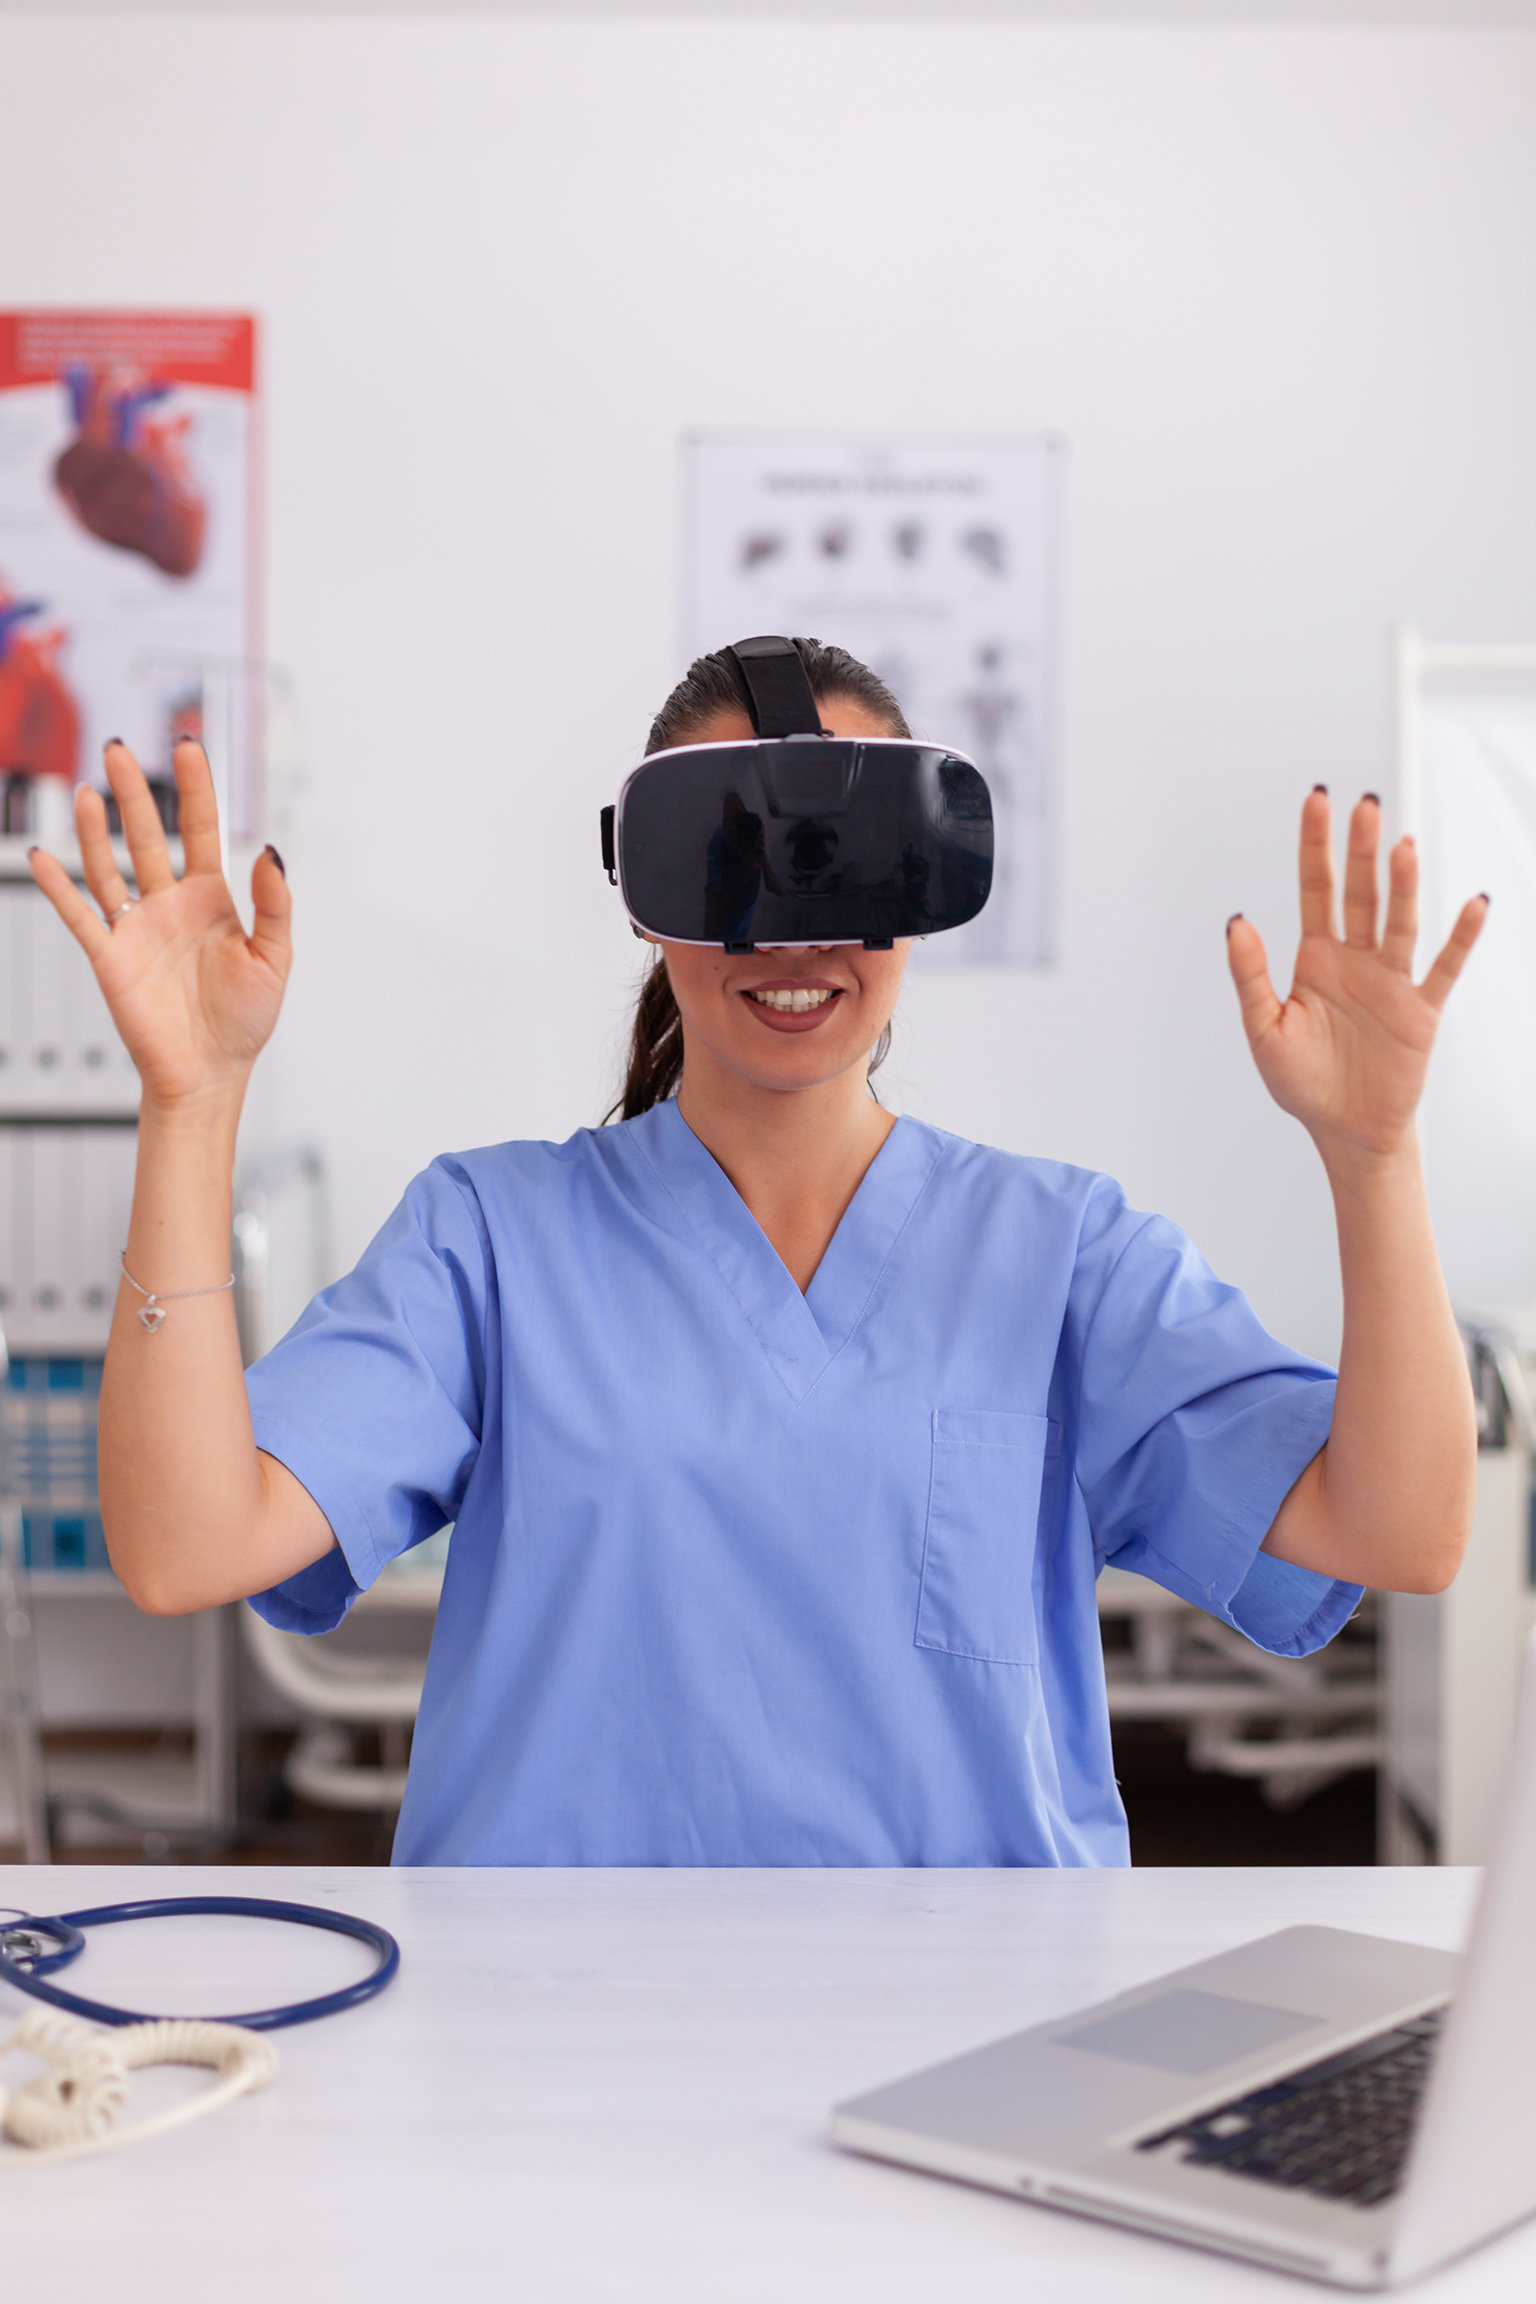 Medical nurse experiencing virtual reality using VR goggles in hospital office